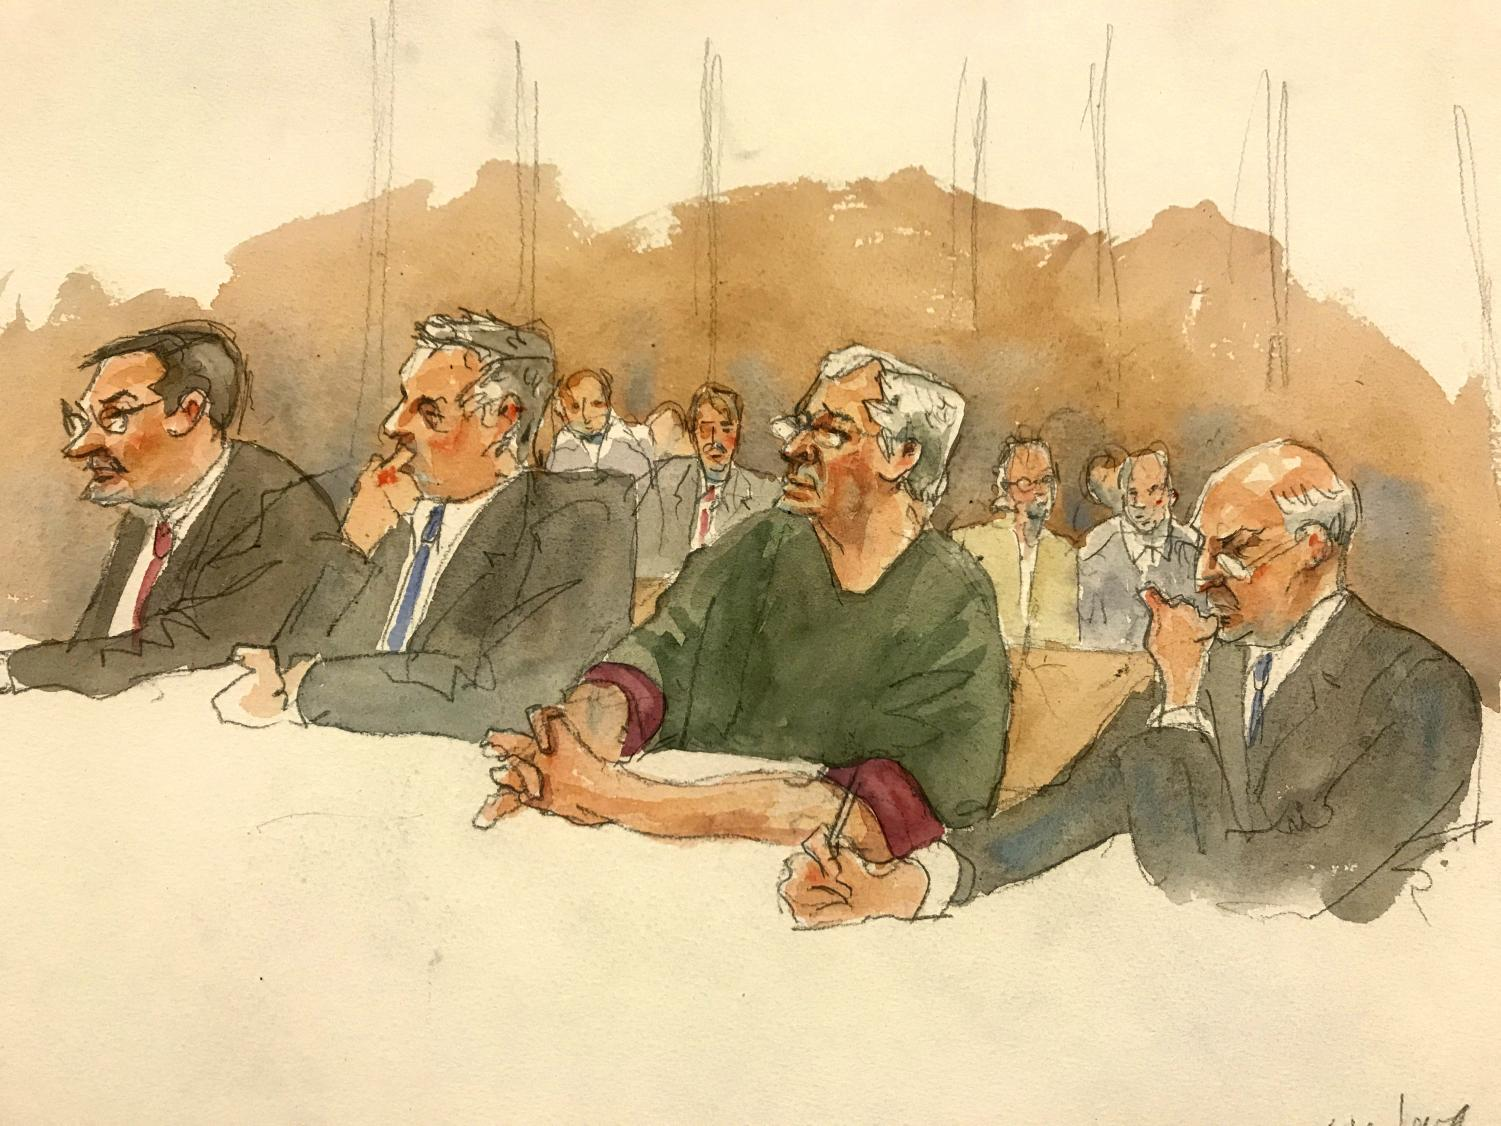 Judge Richard M. Berman denies Jeffery Epstein bail during a hearing in federal court